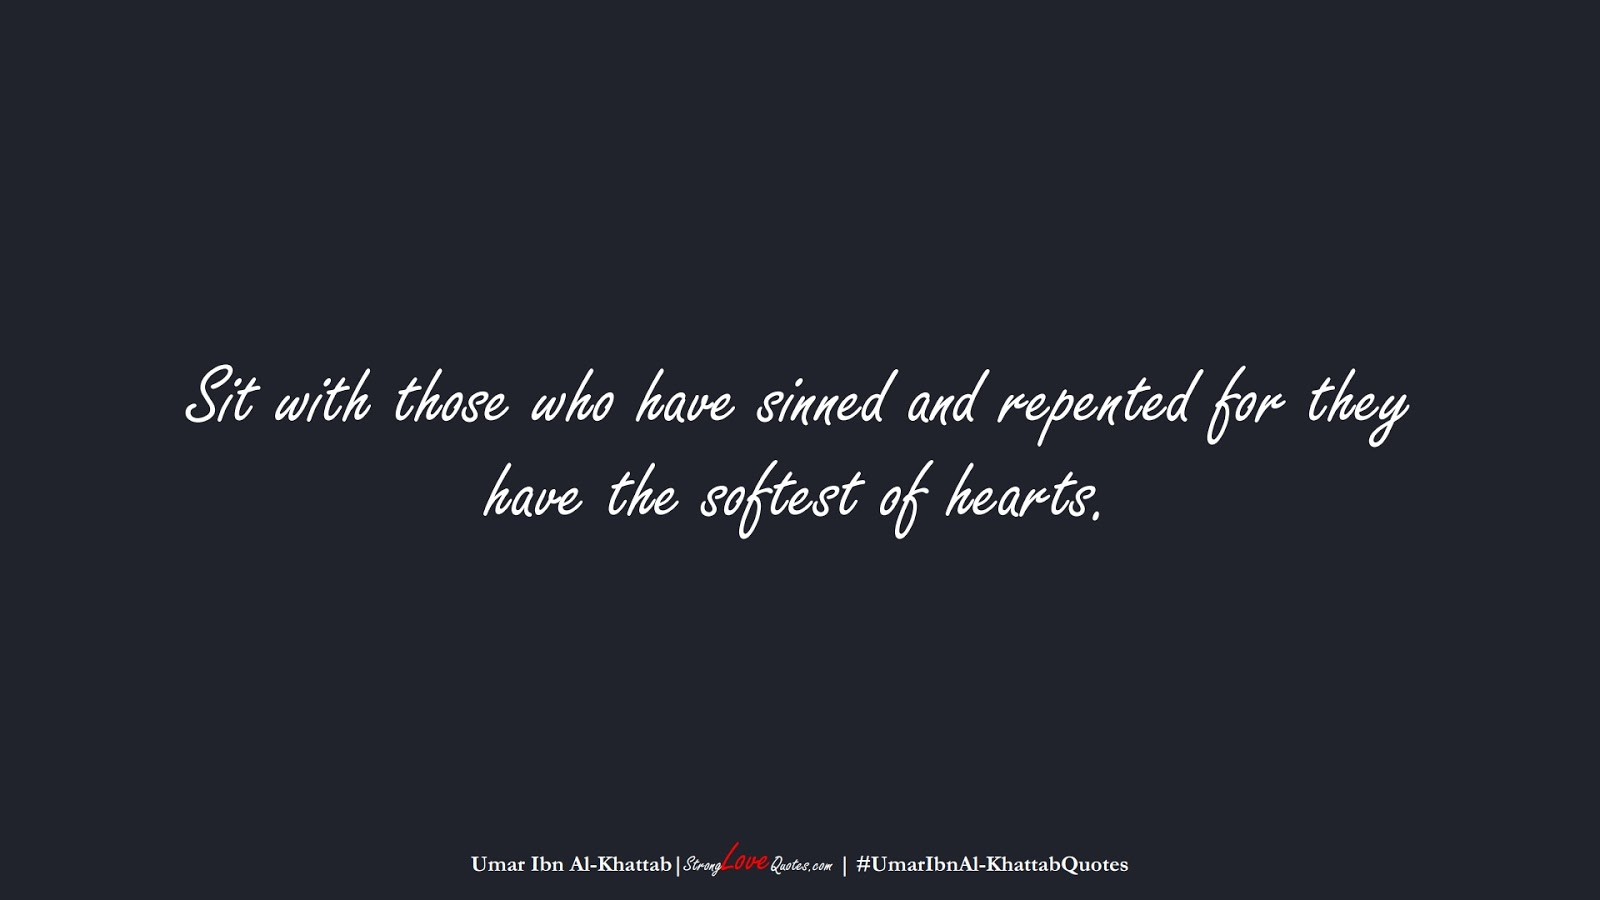 Sit with those who have sinned and repented for they have the softest of hearts. (Umar Ibn Al-Khattab);  #UmarIbnAl-KhattabQuotes